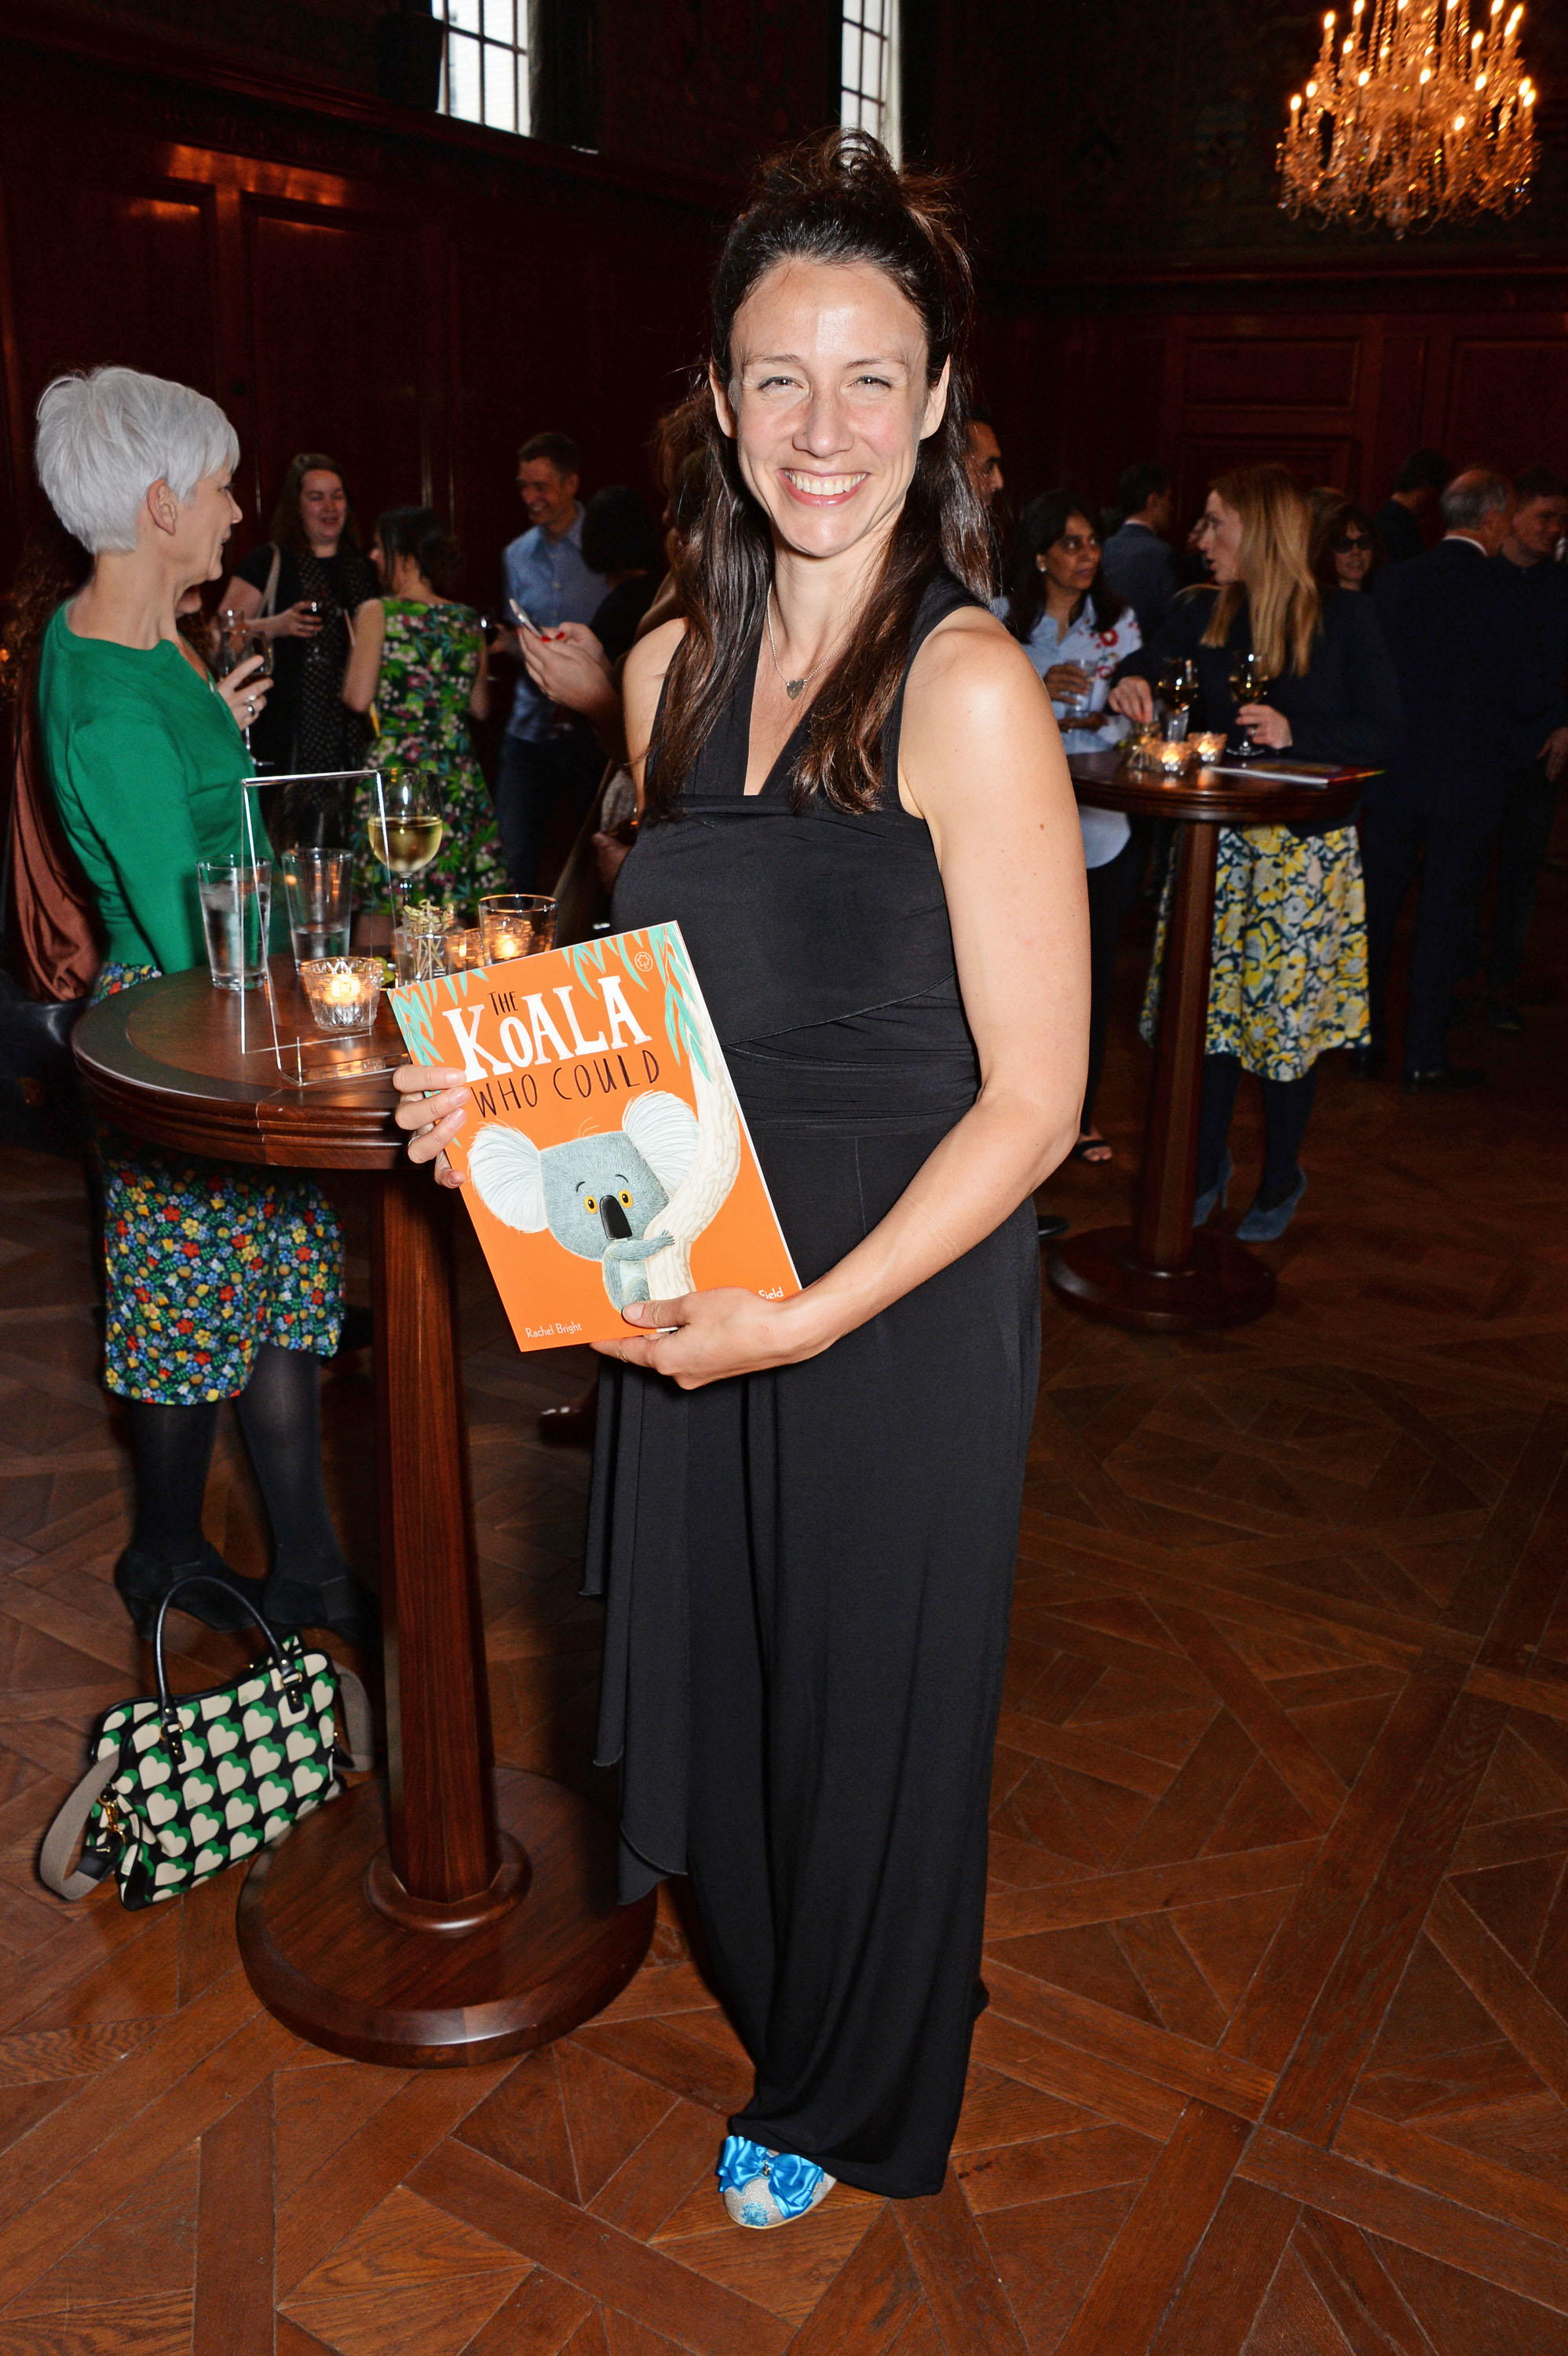 2017 Oscar's Book Prize joint winner: Rachel Bright, author of The Koala Who Could. (Photo: Dave Benett)